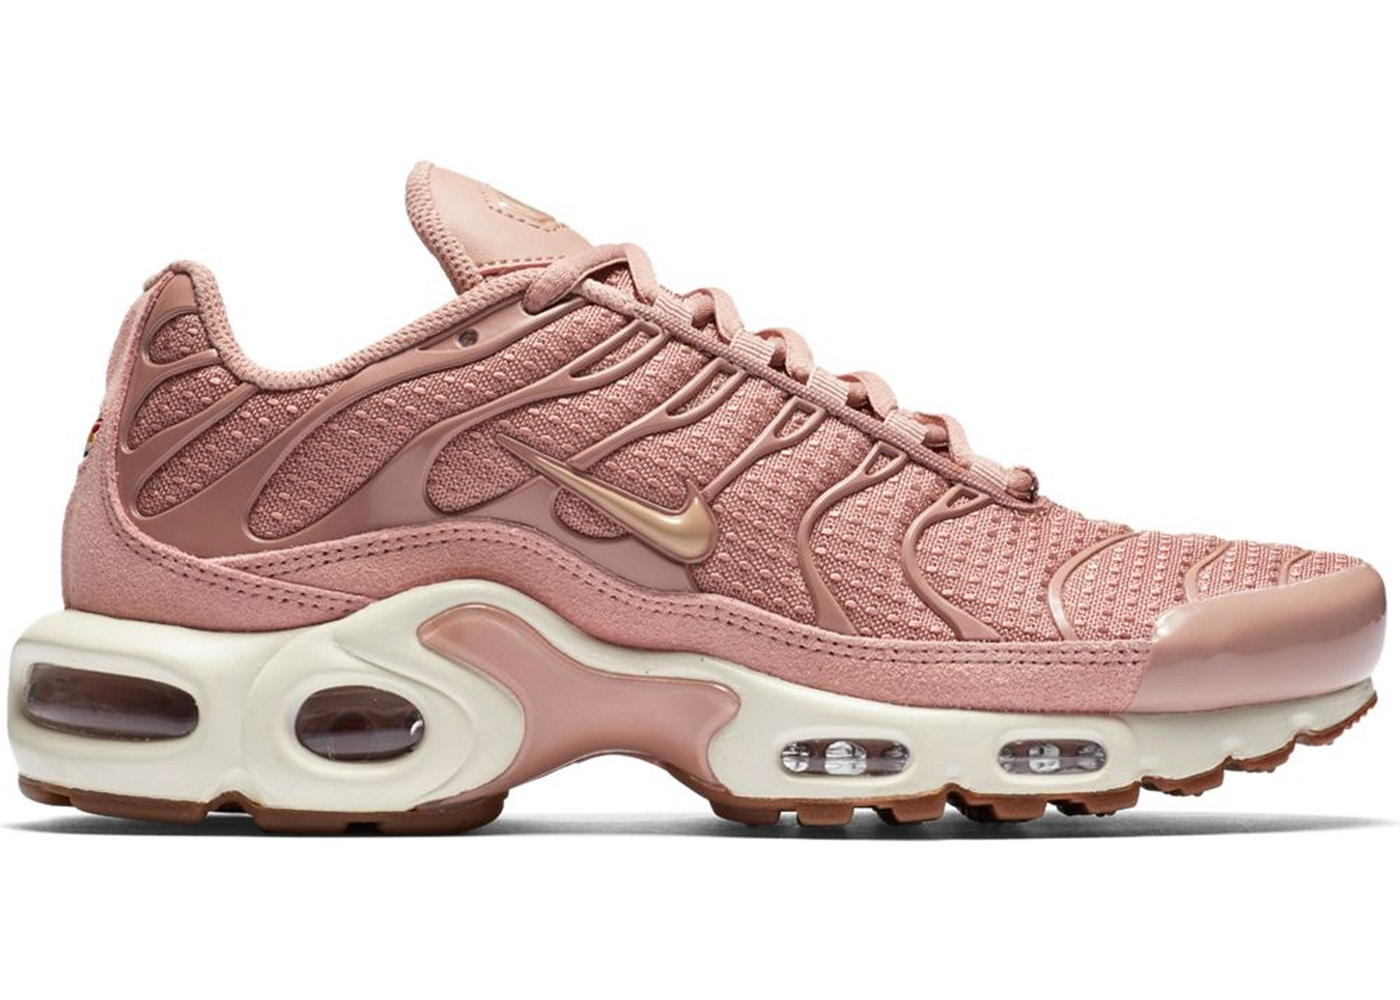 3c1450eb96 Sell. or Ask. Size: 9W. View All Bids. Air Max Plus Particle Pink ...